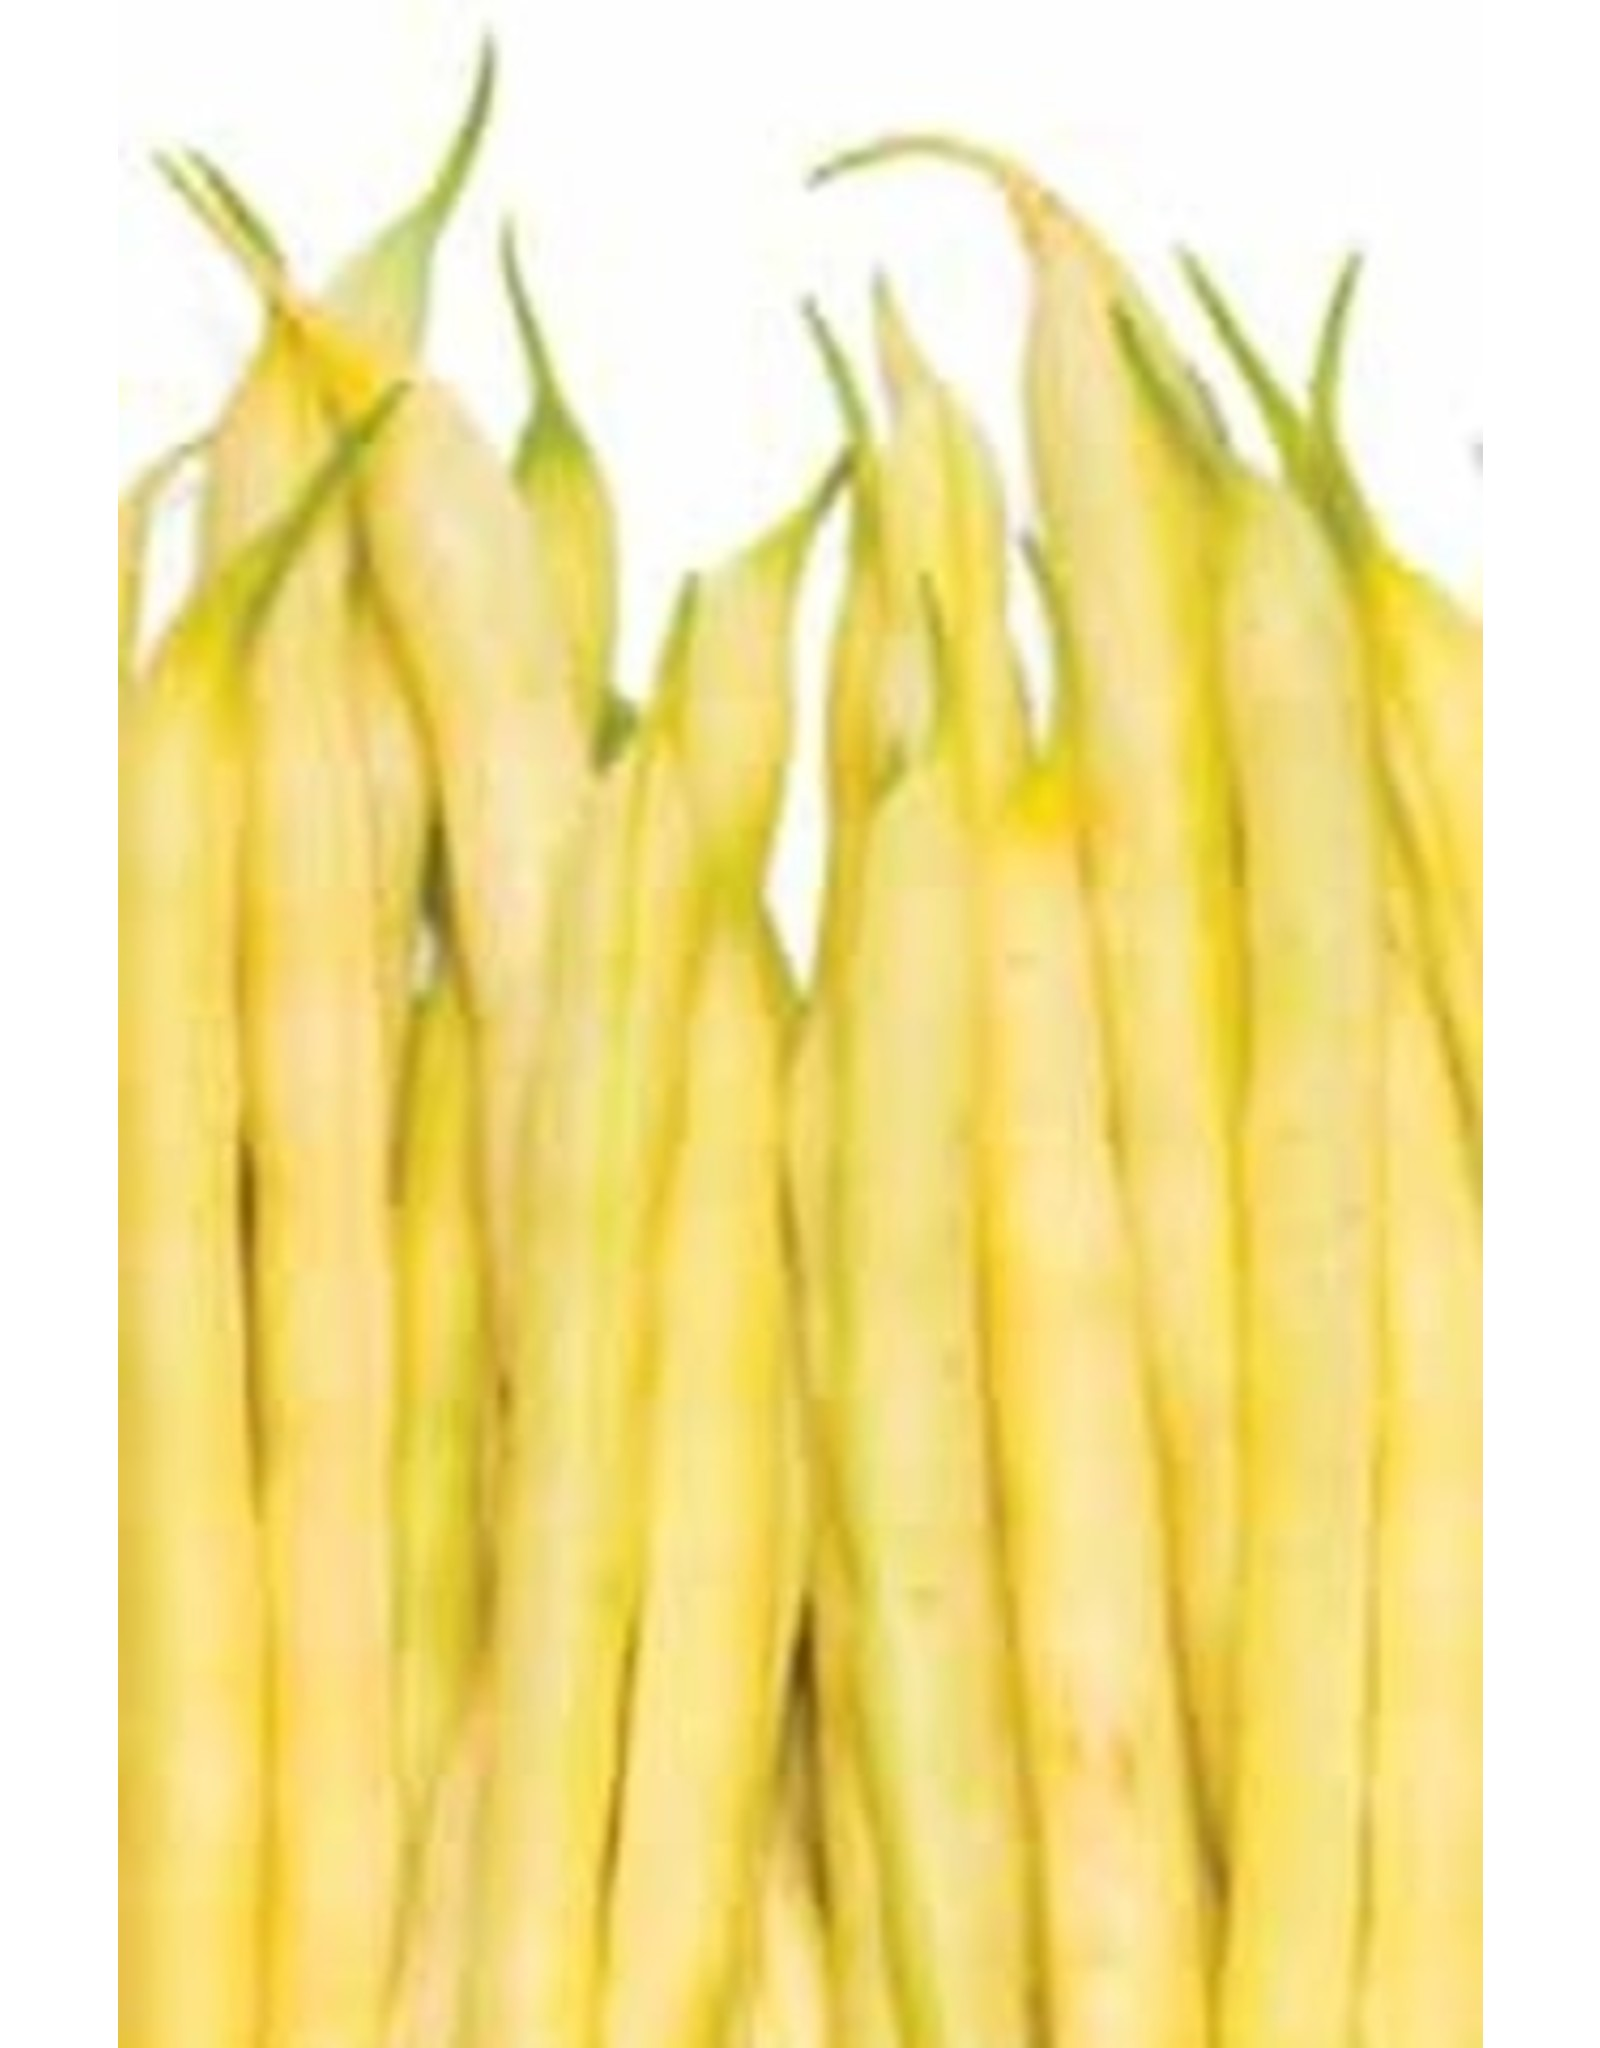 Brittle Wax Yellow Bush Bean Seeds 1150